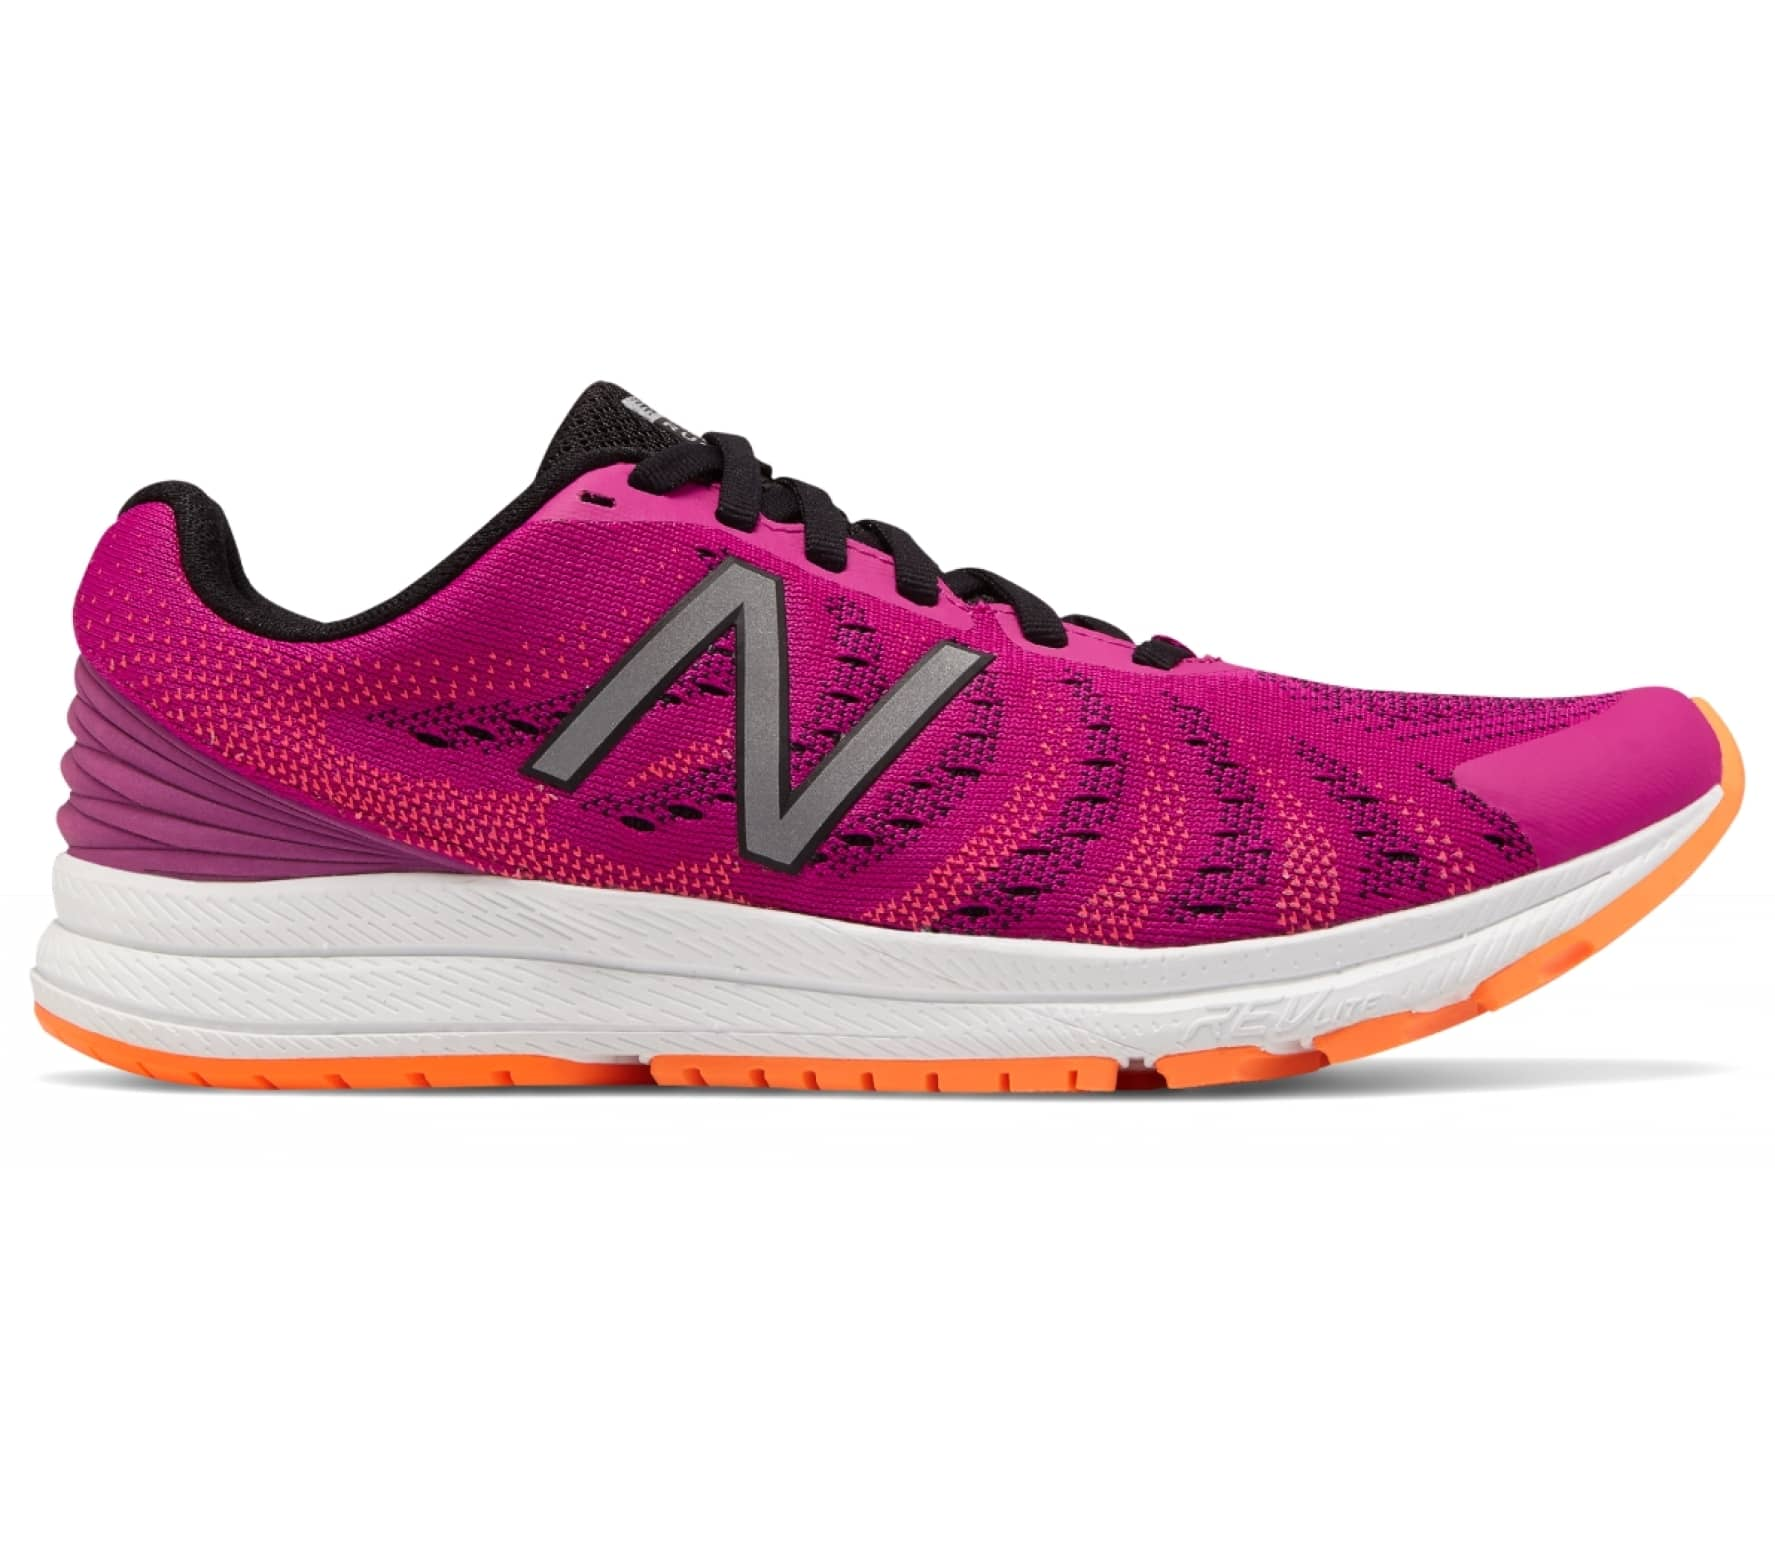 newest 24258 a986b New Balance - Fuelcore Rush v3 women s running shoes (pink black)